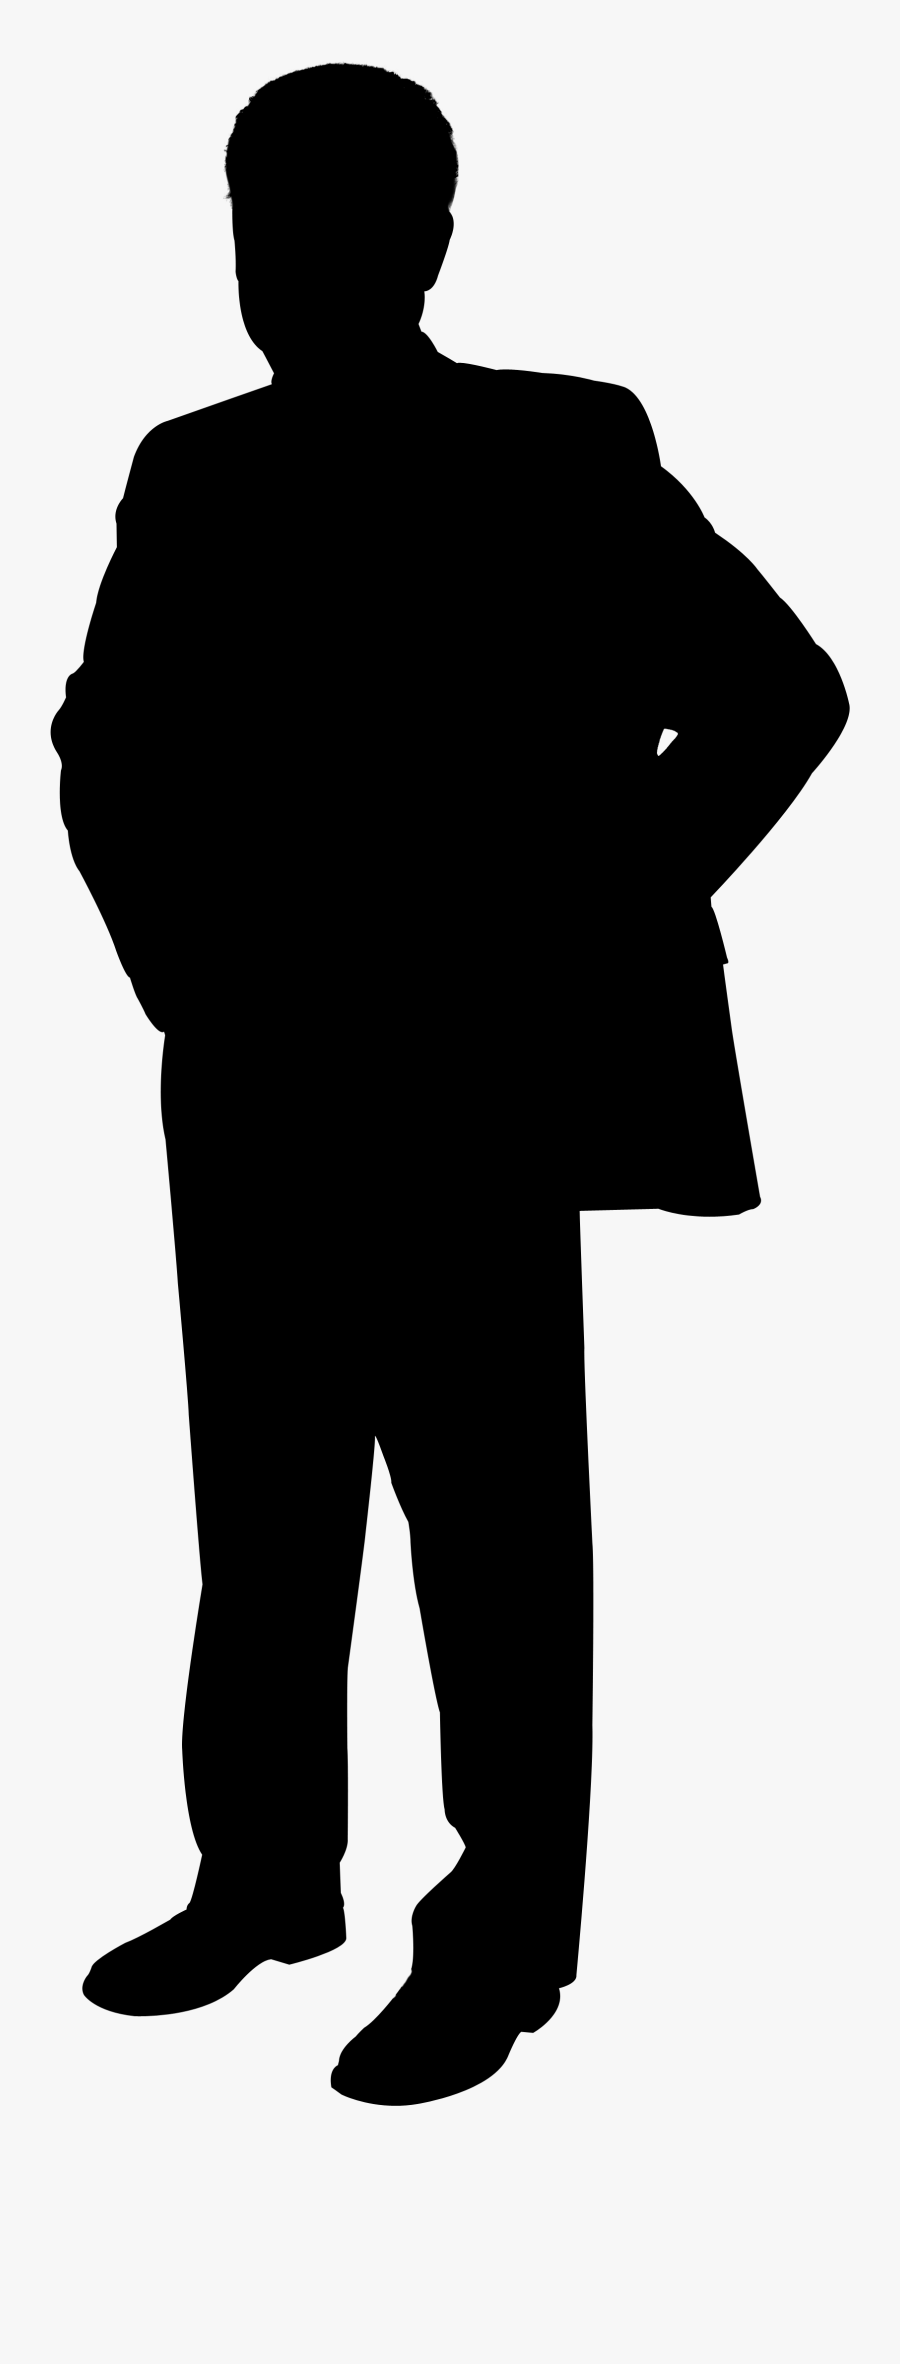 Cathy Gale John Steed Journalist Stock Illustration - Silhouette Of Man Png, Transparent Clipart